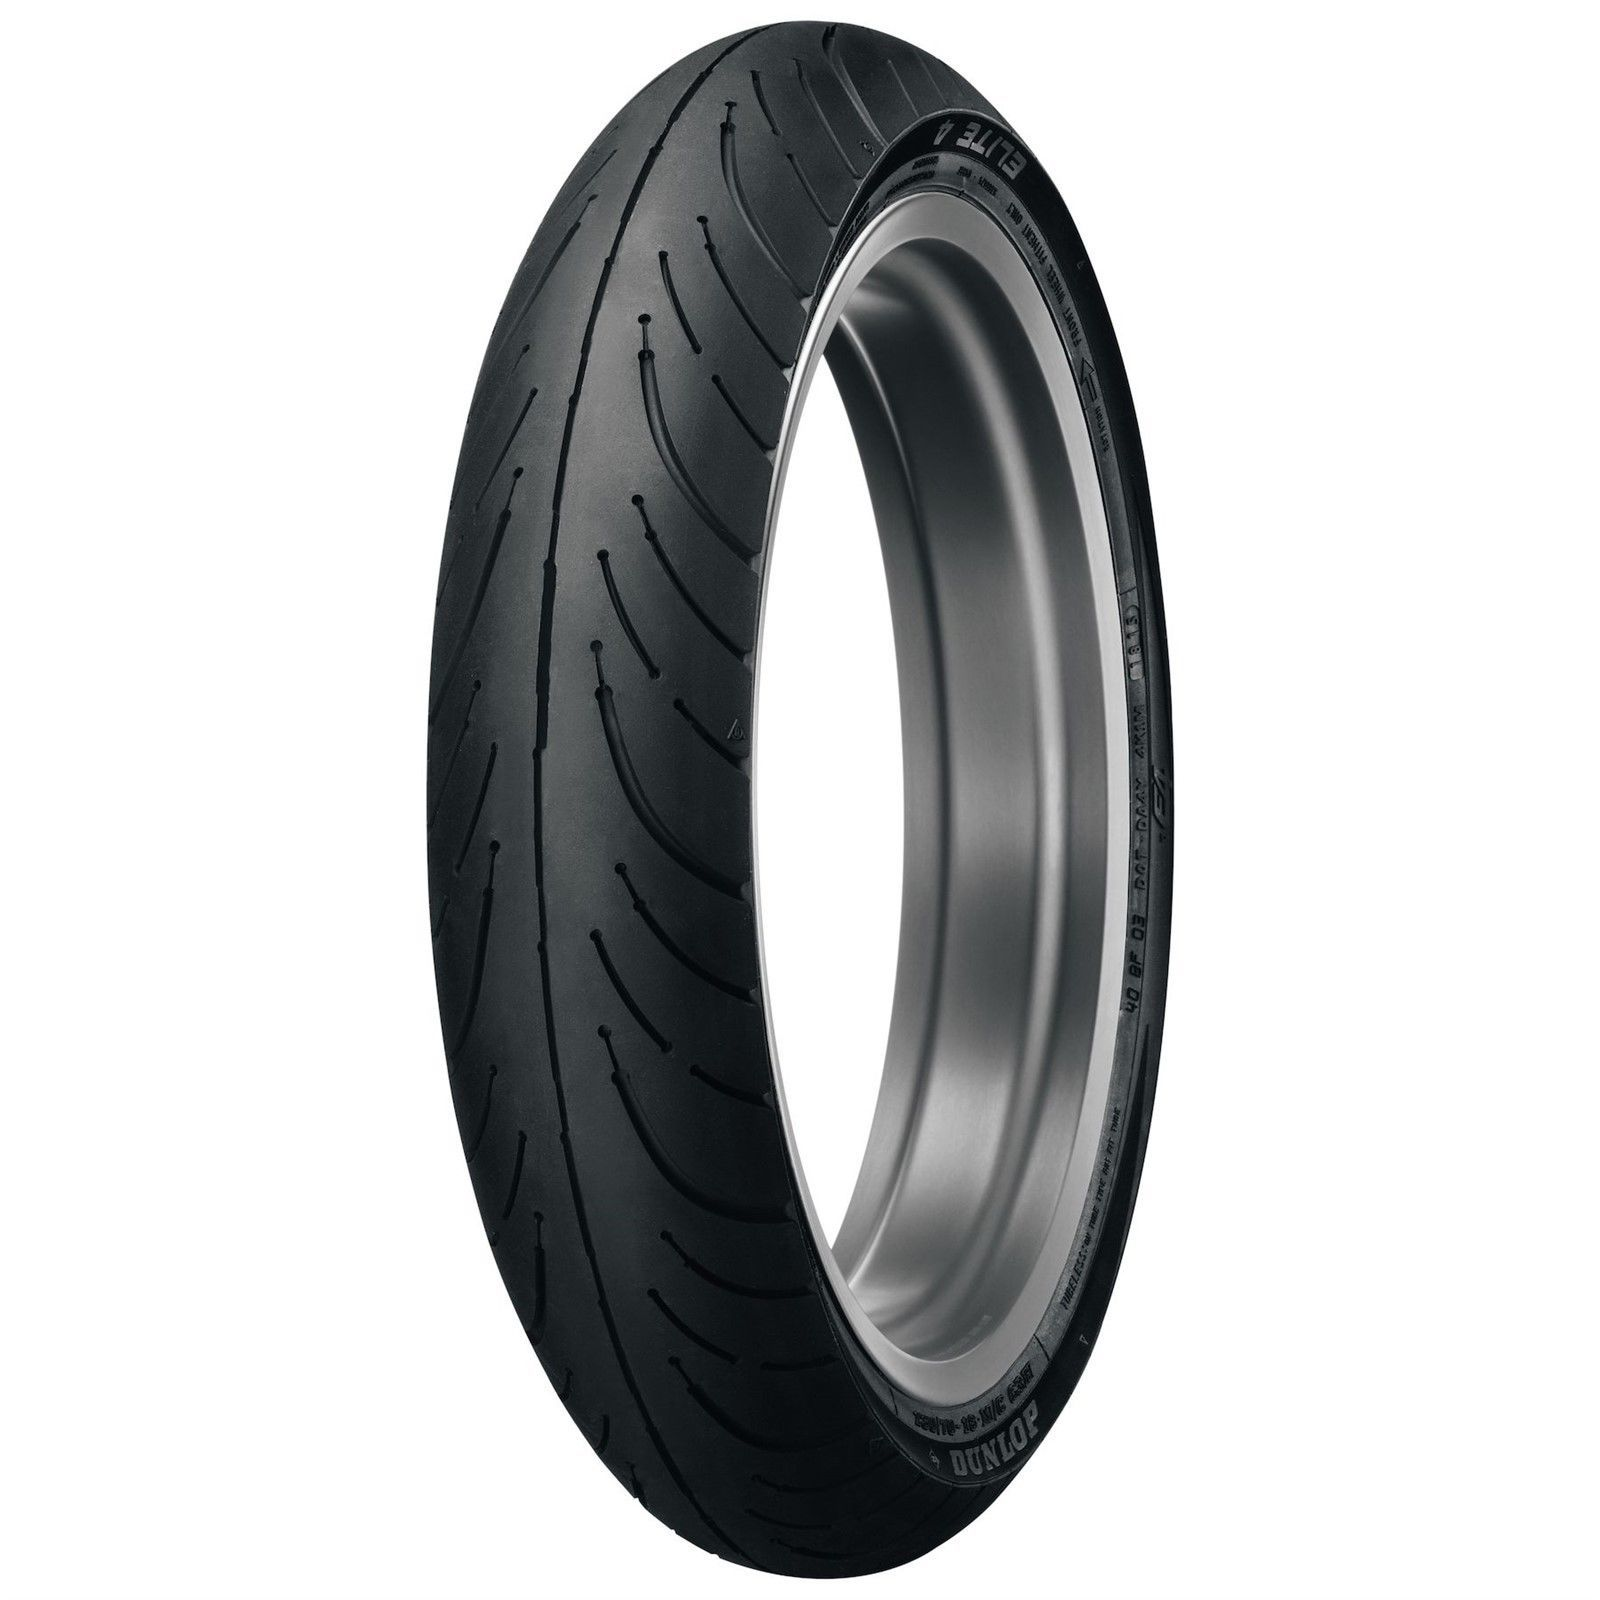 New Dunlop Elite 4 130/70-18 Bias Front Motorcycle Tire 63H High Mileage